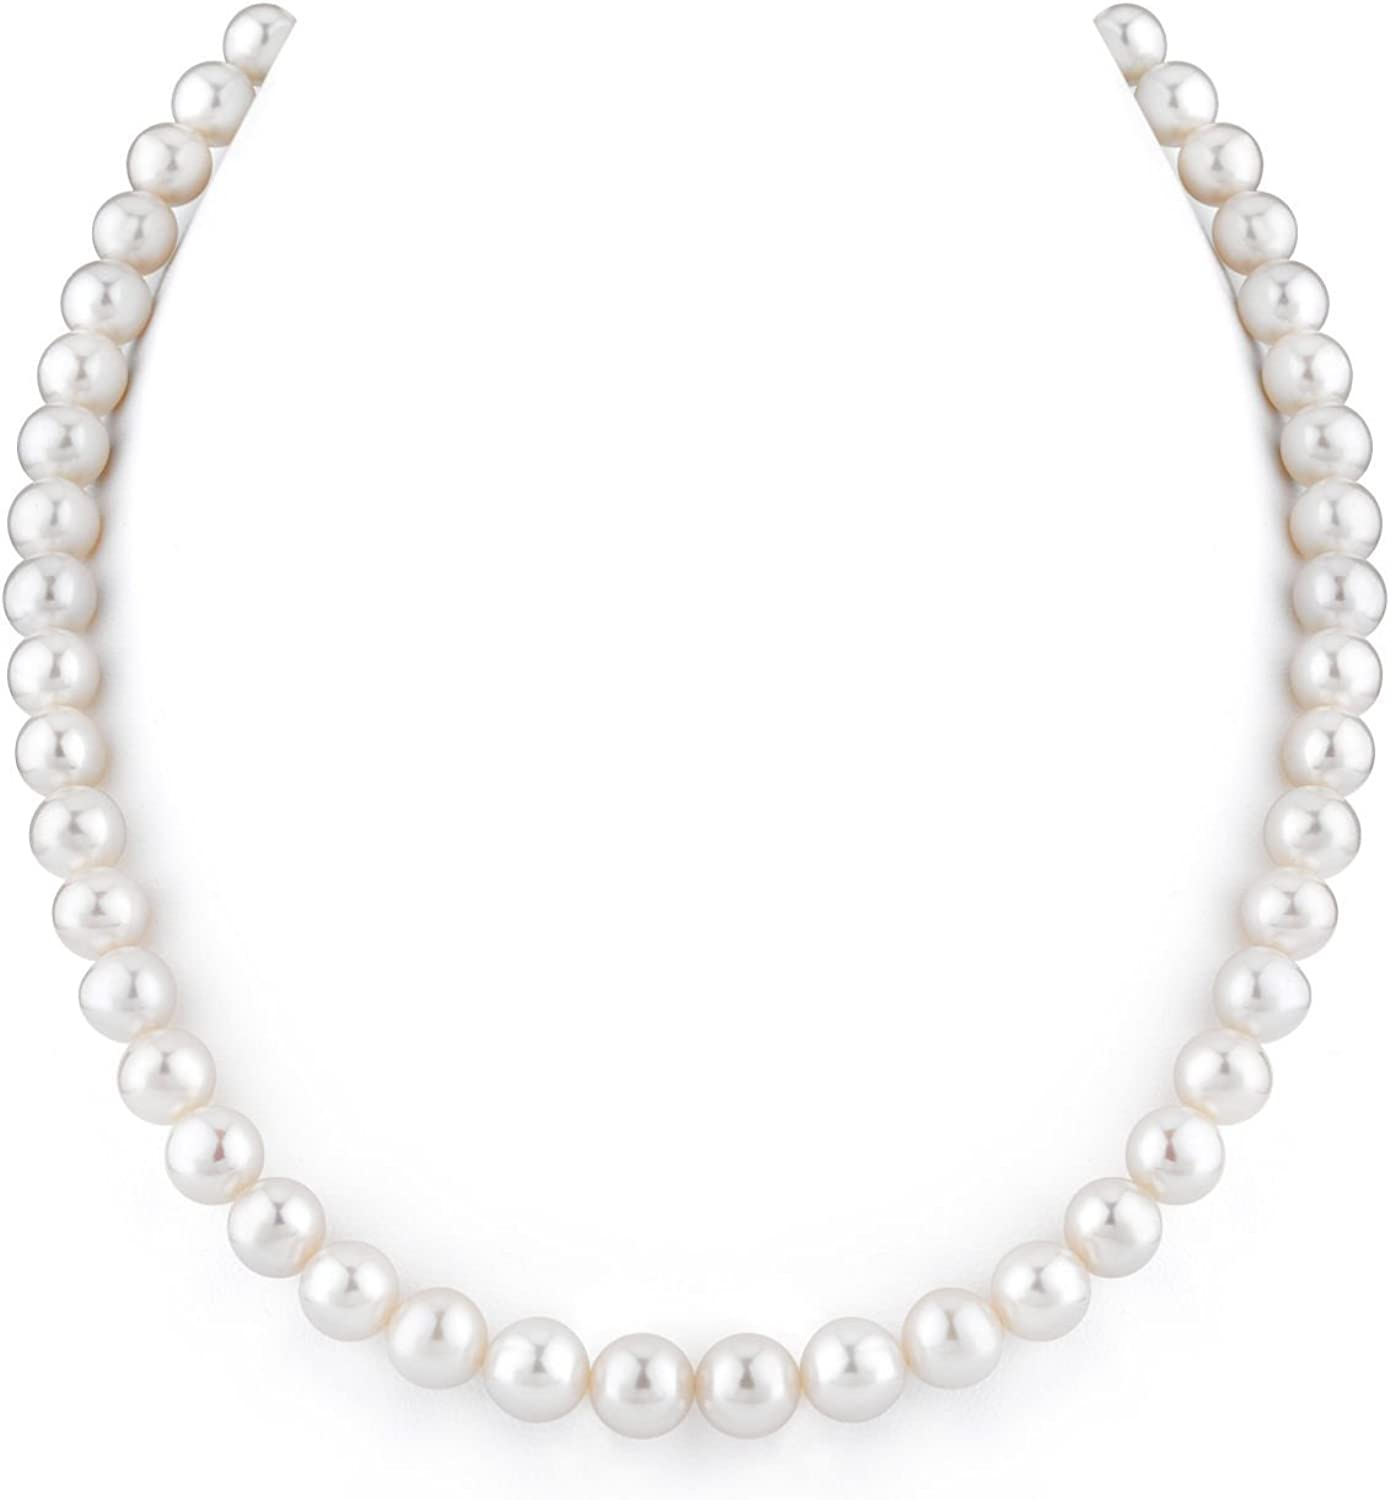 Dedication THE PEARL SOURCE 14K Gold 8-9mm National products Quality Freshwater White AAAA Cu